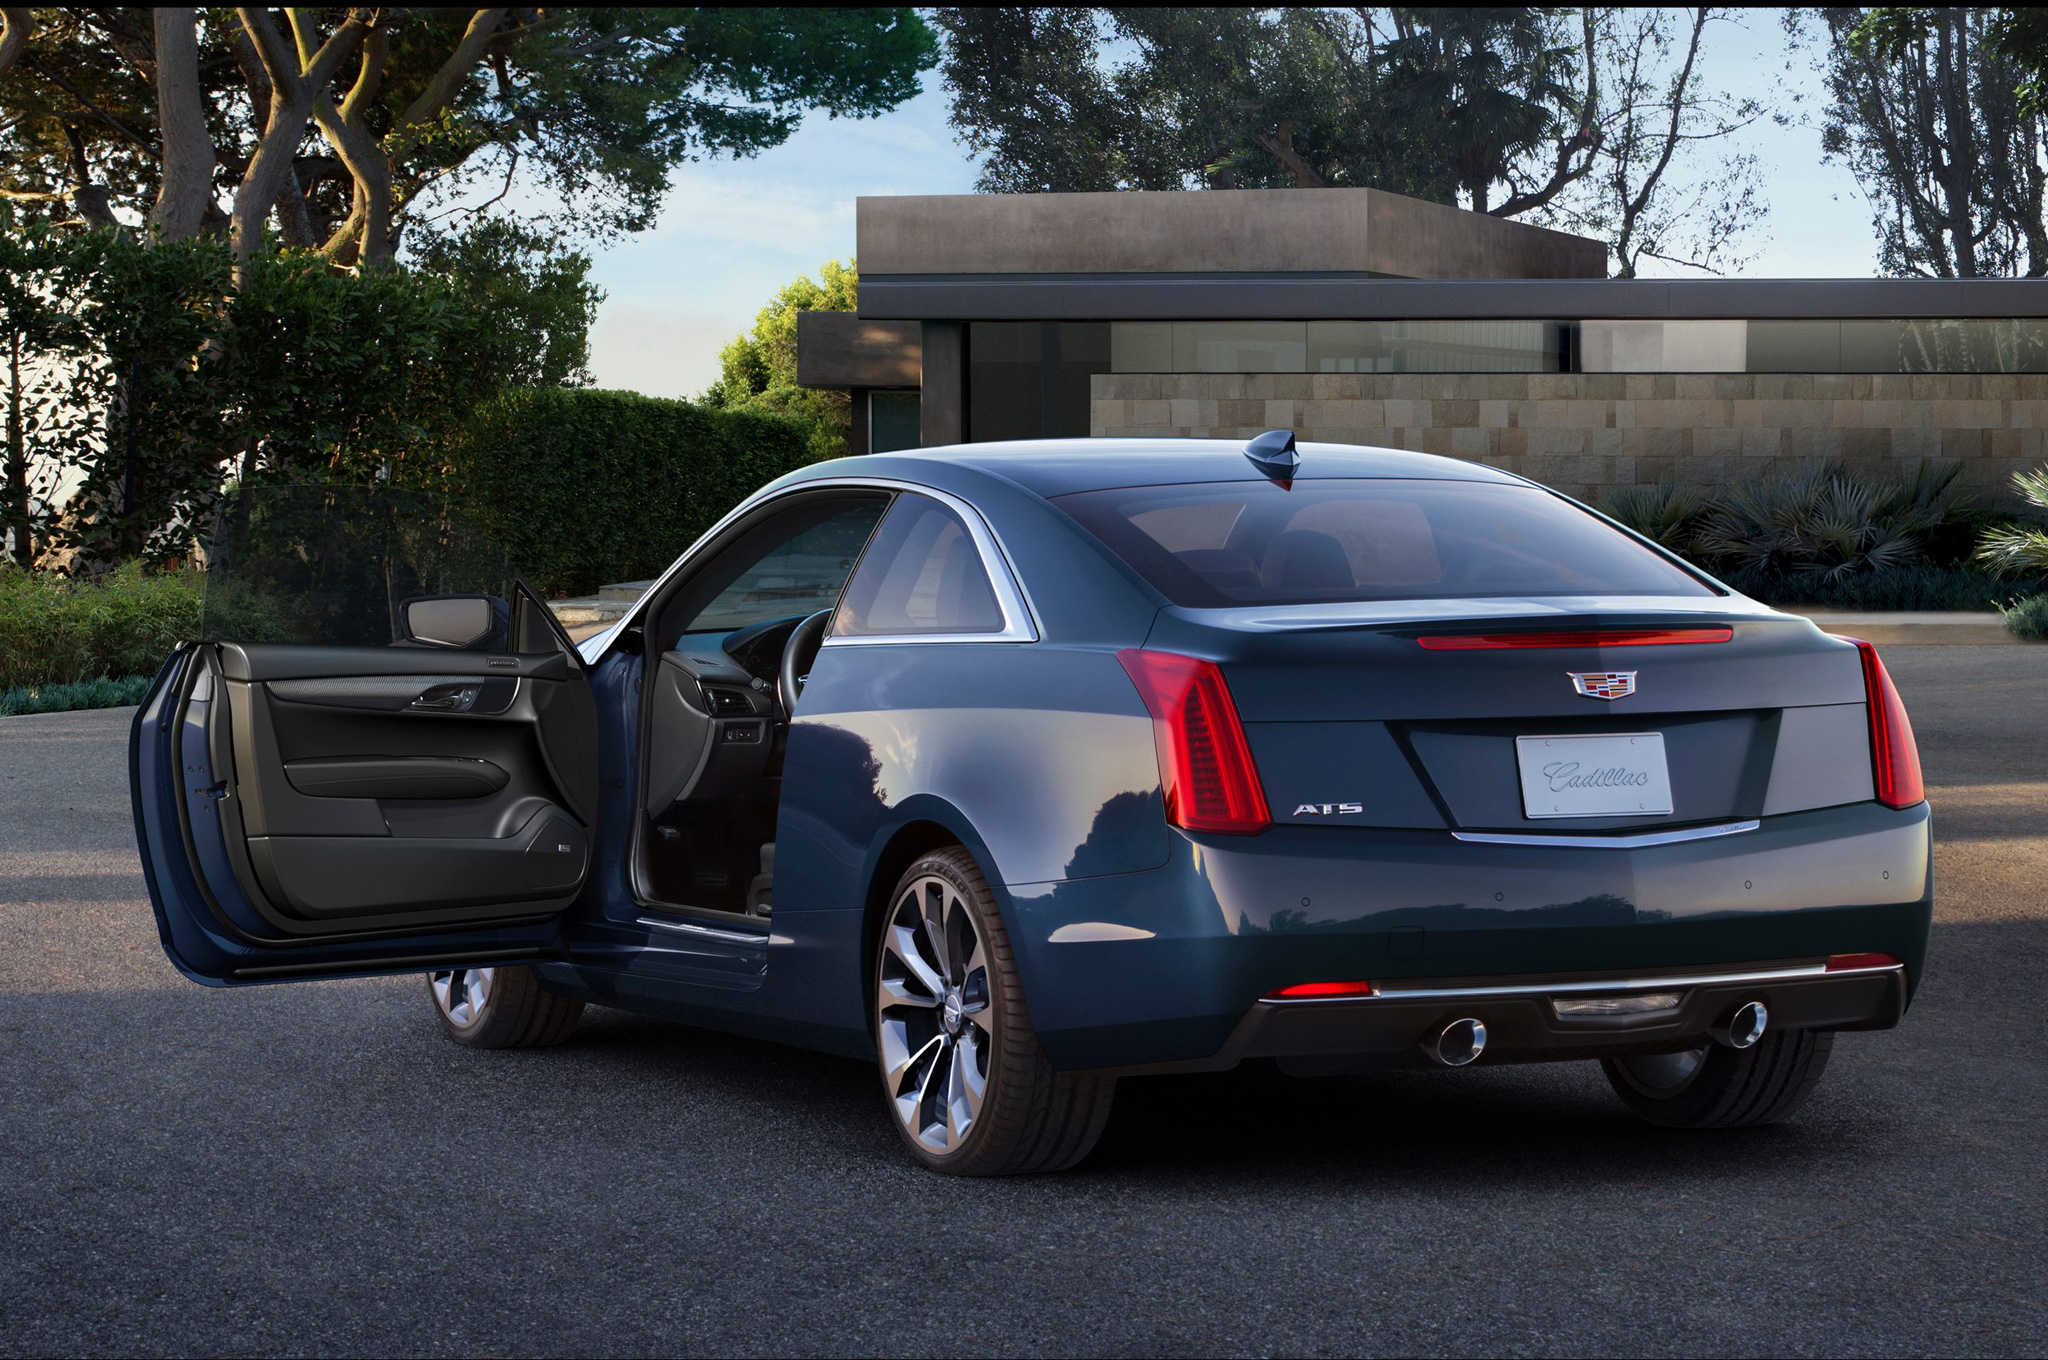 2015 Cadillac Ats Coupe Rear Side Exterior (View 19 of 21)